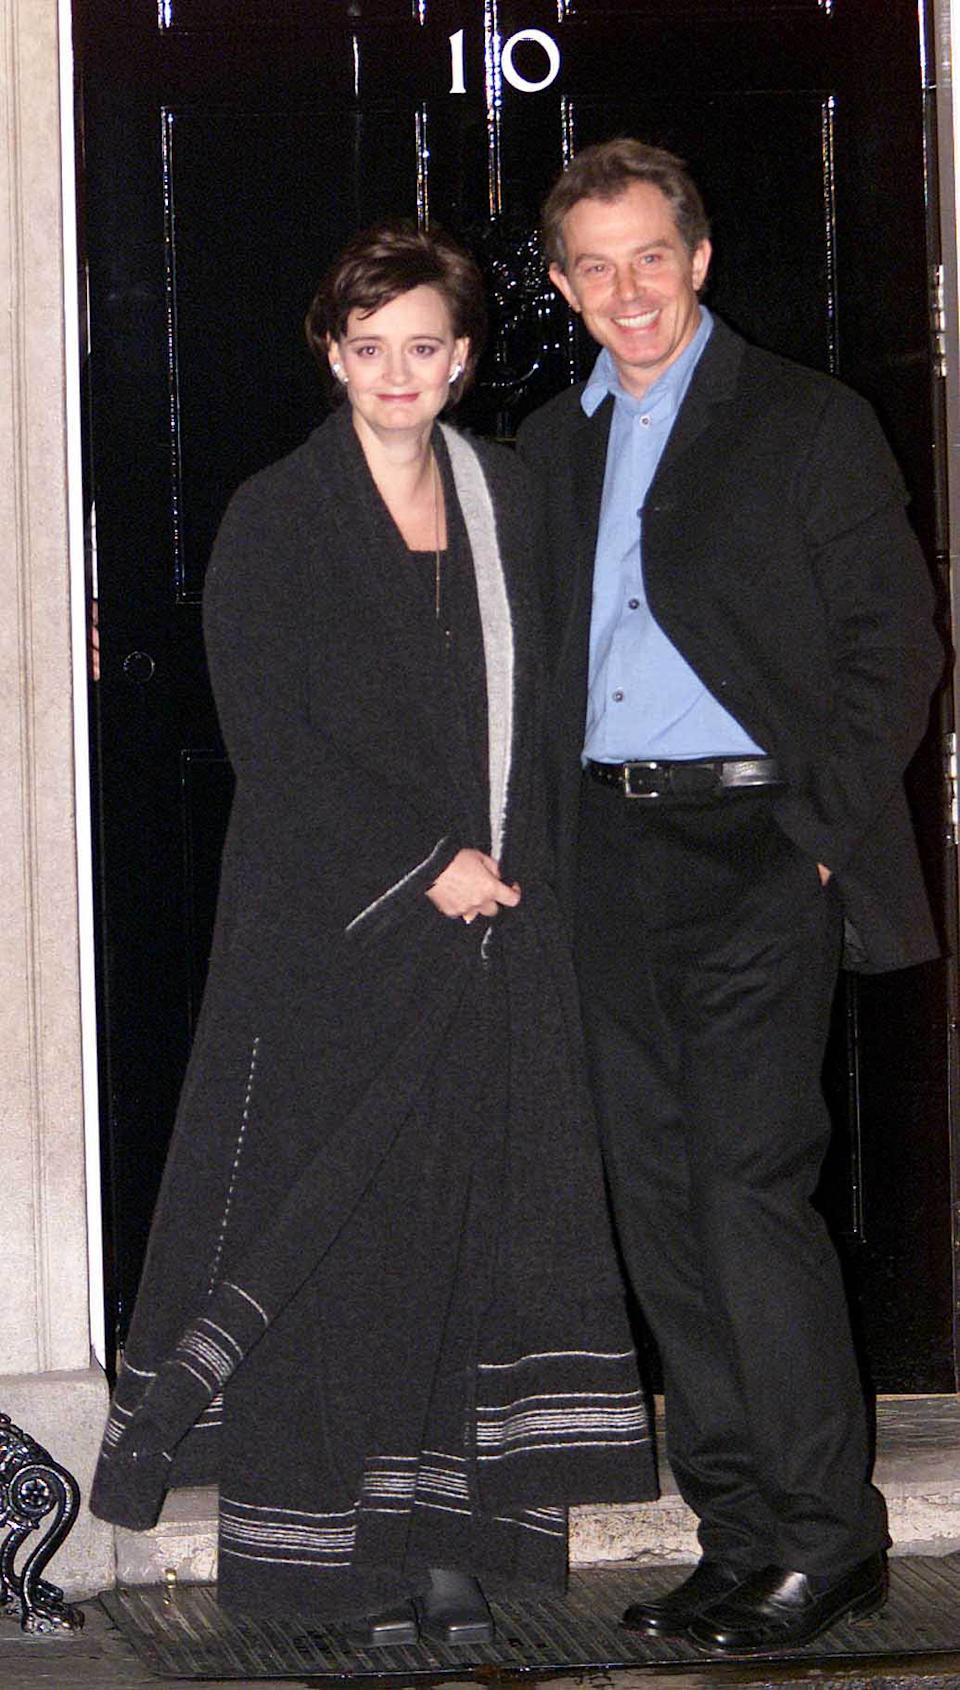 Former barrister Cherie Blair joined husband Tony at Downing Street back in May 1997. During her legal career, she specialised in employment, public law and discrimination cases. The mother-of-four later went on to focus on charity work and launched the Cherie Blair Foundation for Women in 2008 - an organisation which aims to support female entrepreneurs in developing countries. She is also a patron of Breast Cancer Care, Jospice and Scope. <em>[Photo: Getty]</em>